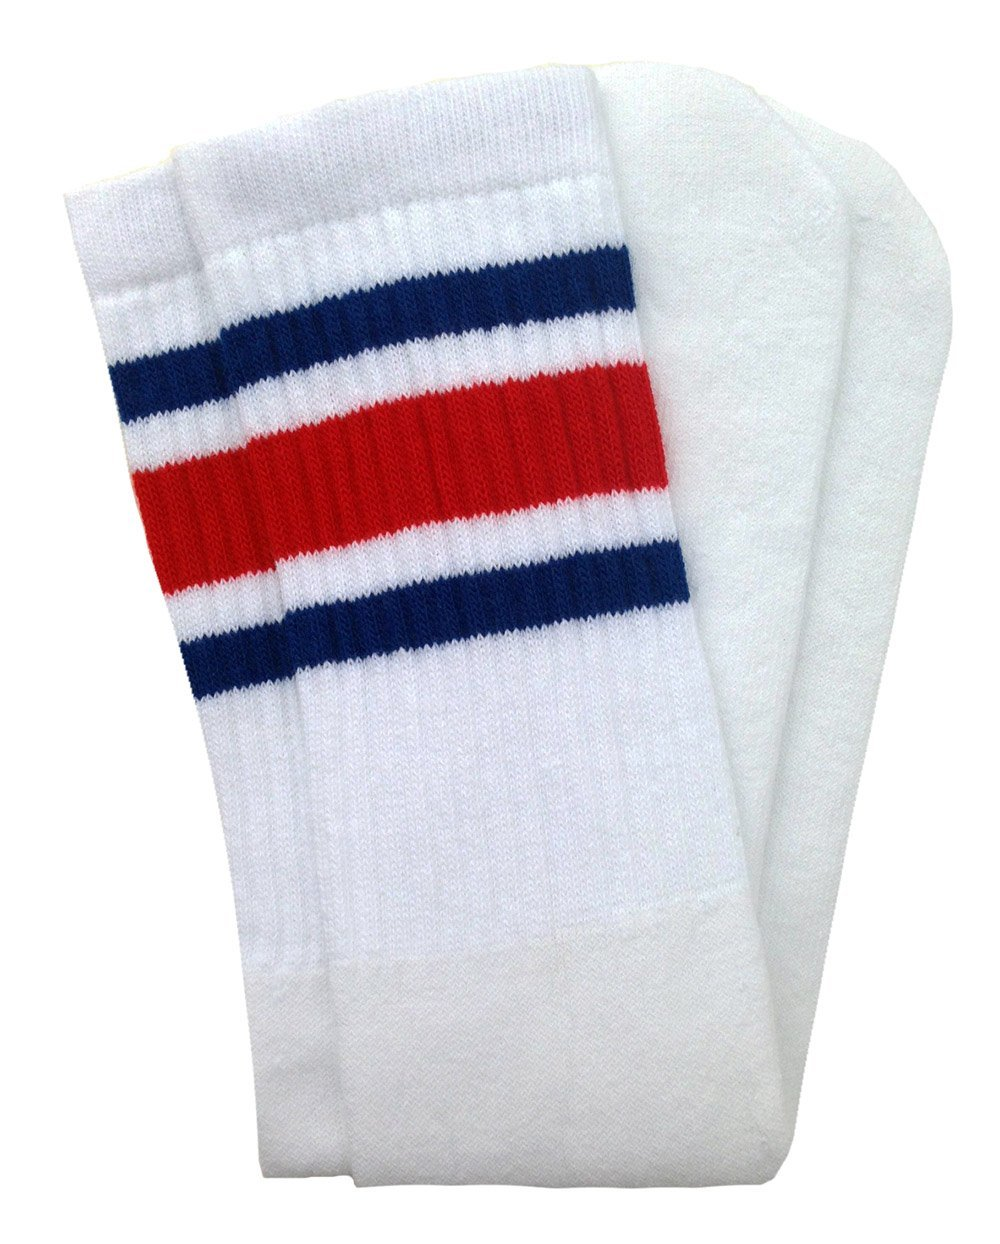 SKATERSOCKS Skater Socks 19'' Mid Calf White Tube Socks with Royal Blue-Red Stripes Style 3